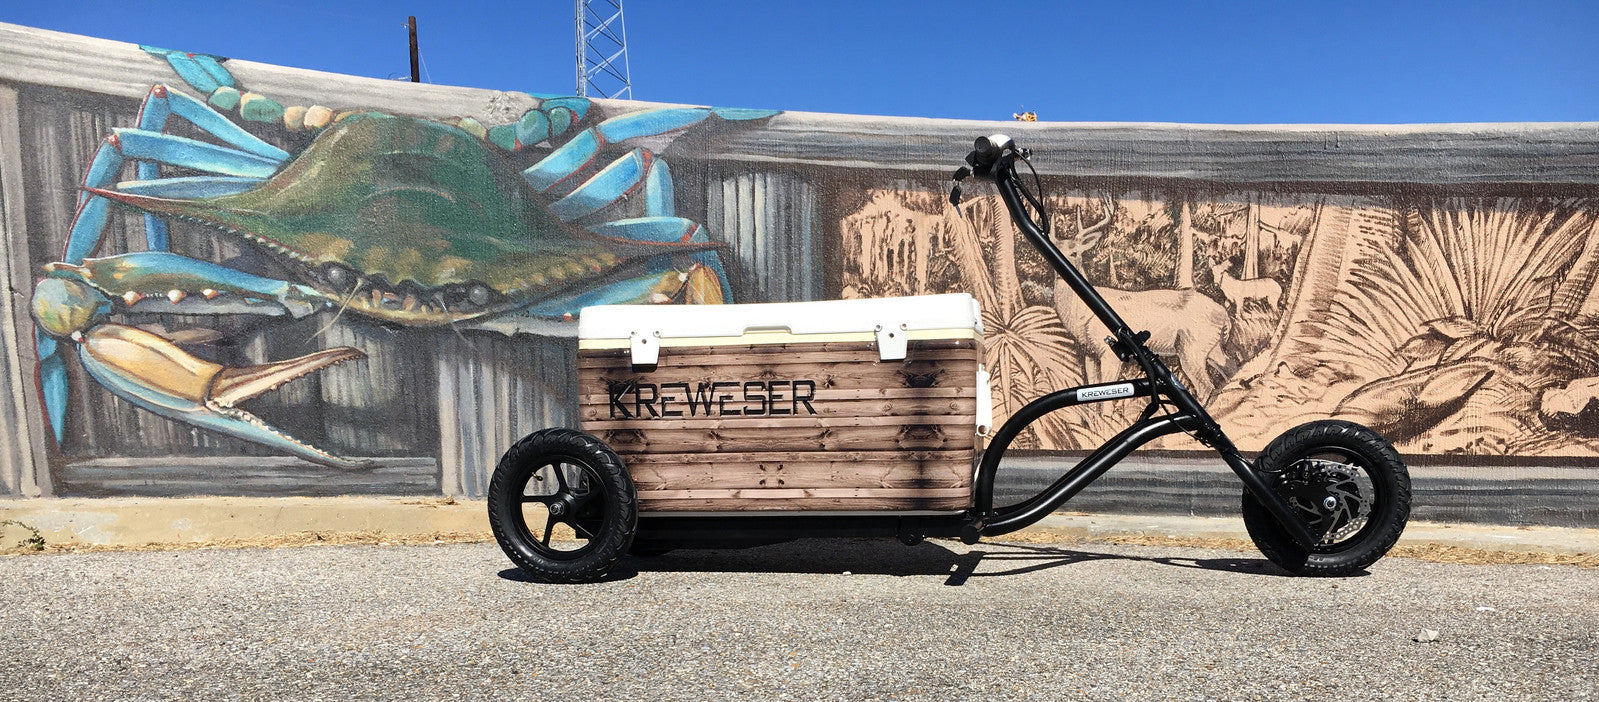 Kreweser motorized cooler